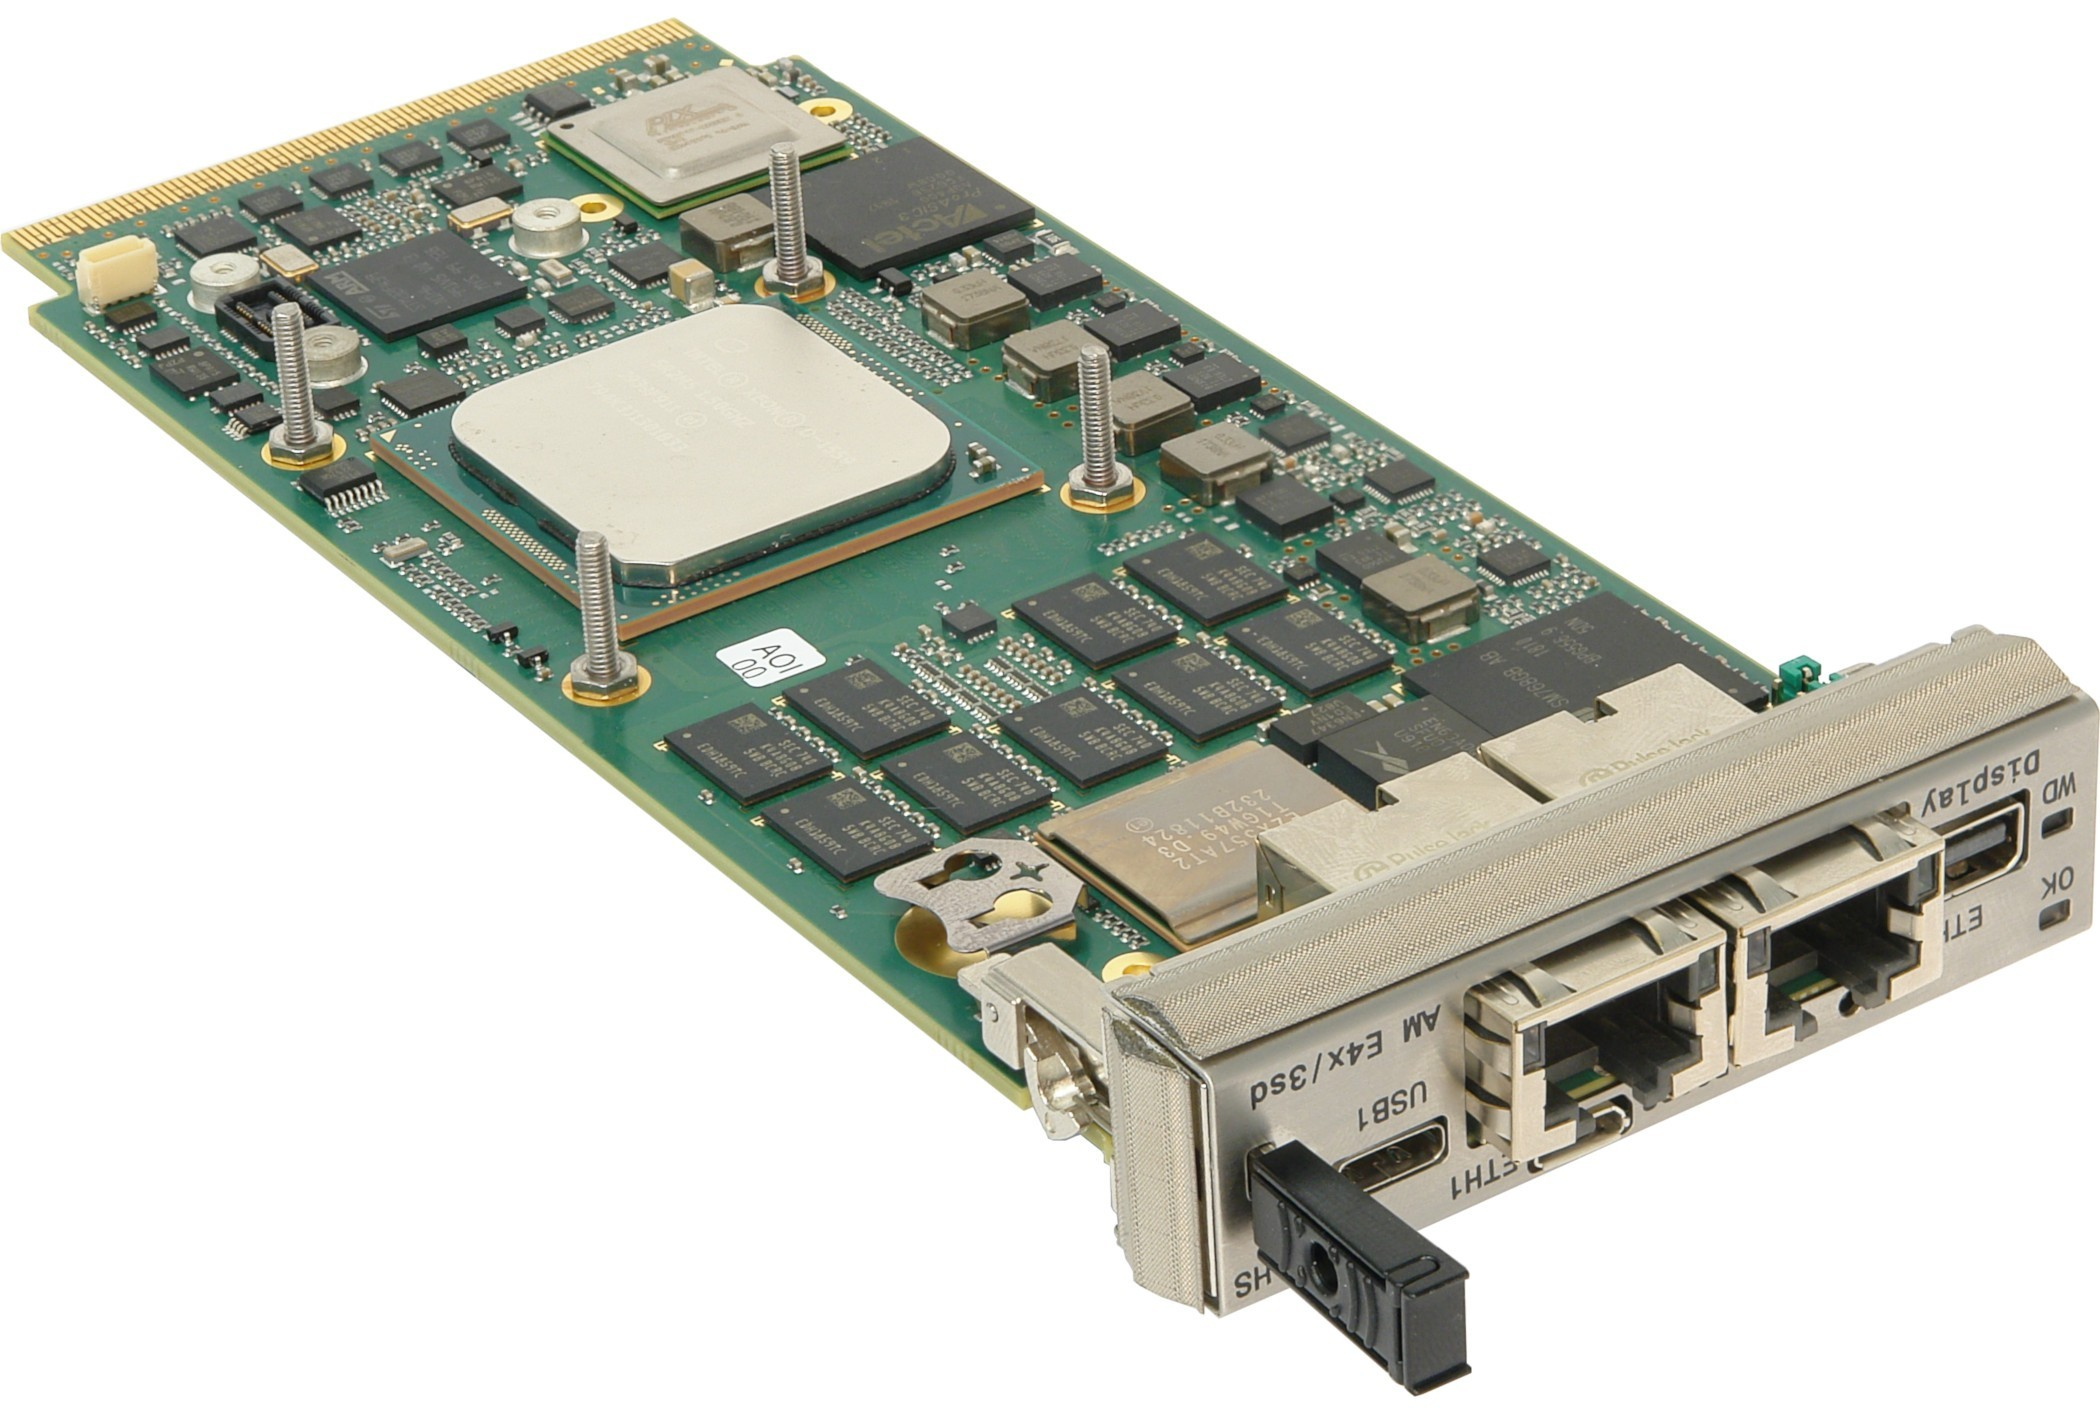 <h4>AM E4x/msd AdvancedMC module based on Intel Xeon Processor D-1500<h4>